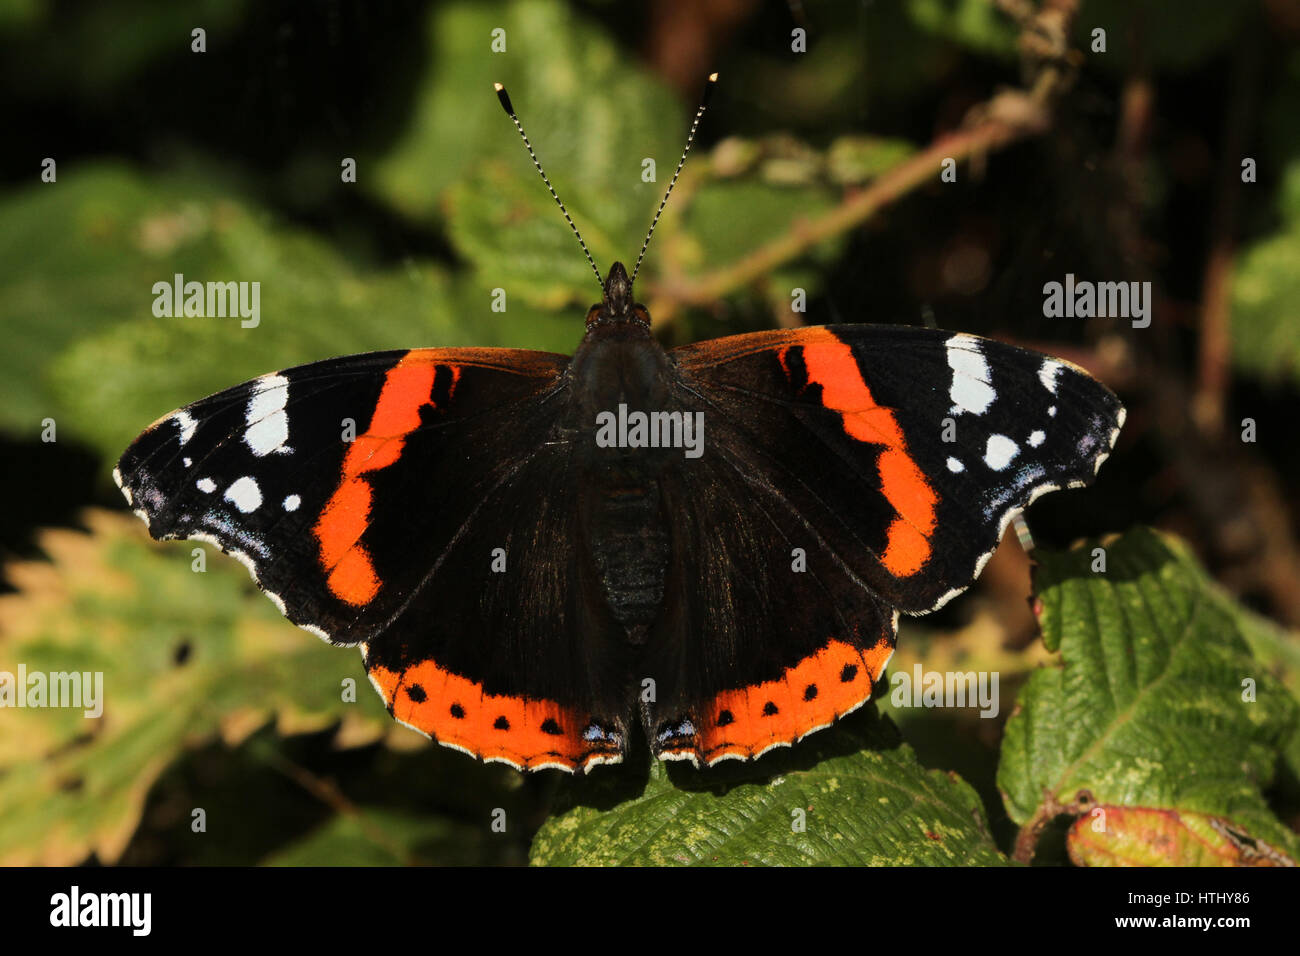 A beautiful Red Admiral Butterfly (Vanessa atalanta) perched on a leaf with open wings. Stock Photo